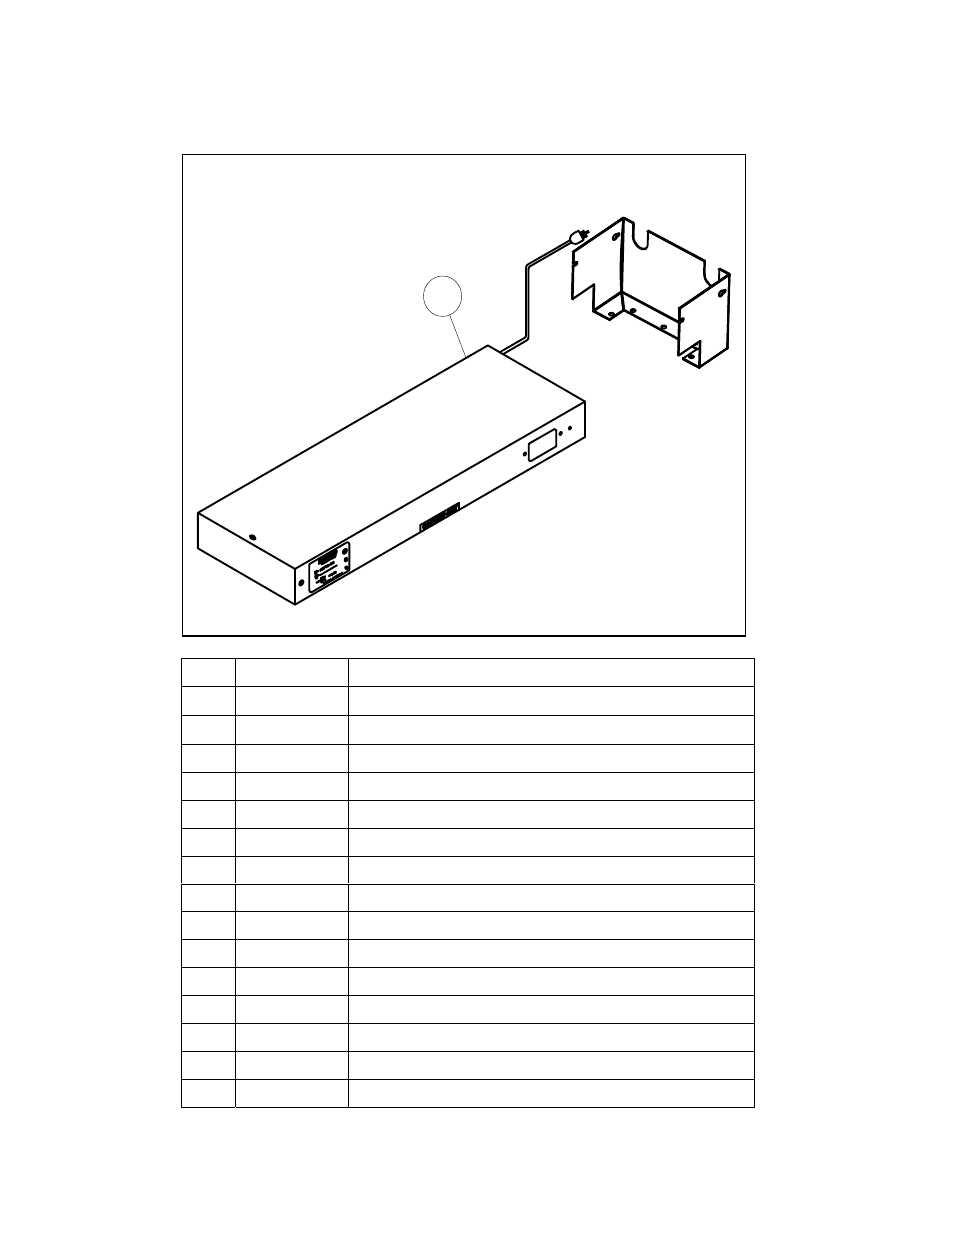 Quartz Tube Heater Wiring Diagram 240v Electrical Merco Heat Lamps Food Warmers Frymaster Fwh 1 User Manual Page 4 14 Portable Electric Diagrams